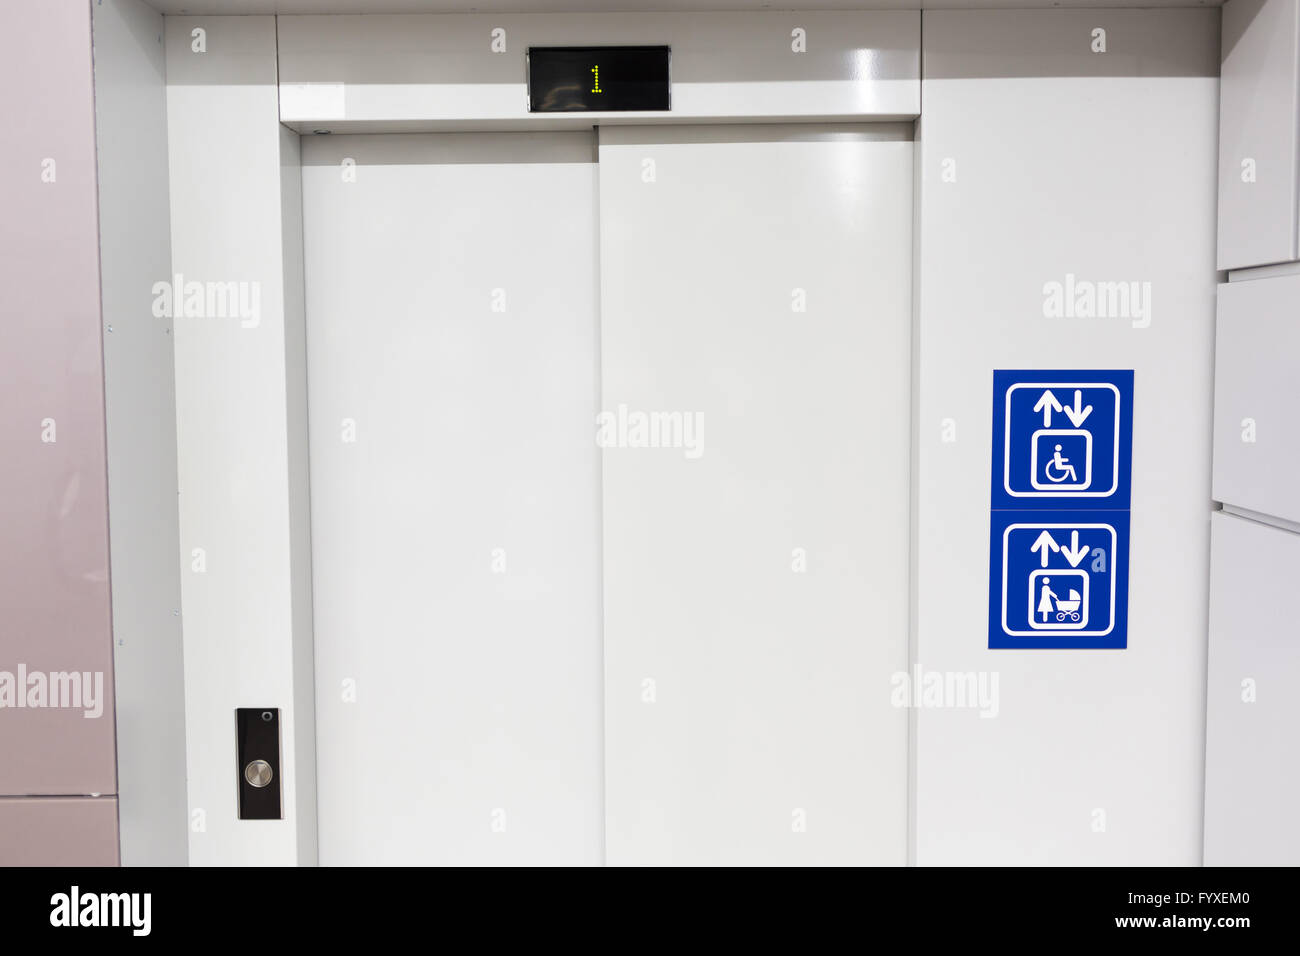 Elevator for mothers and physically disabled - Stock Image